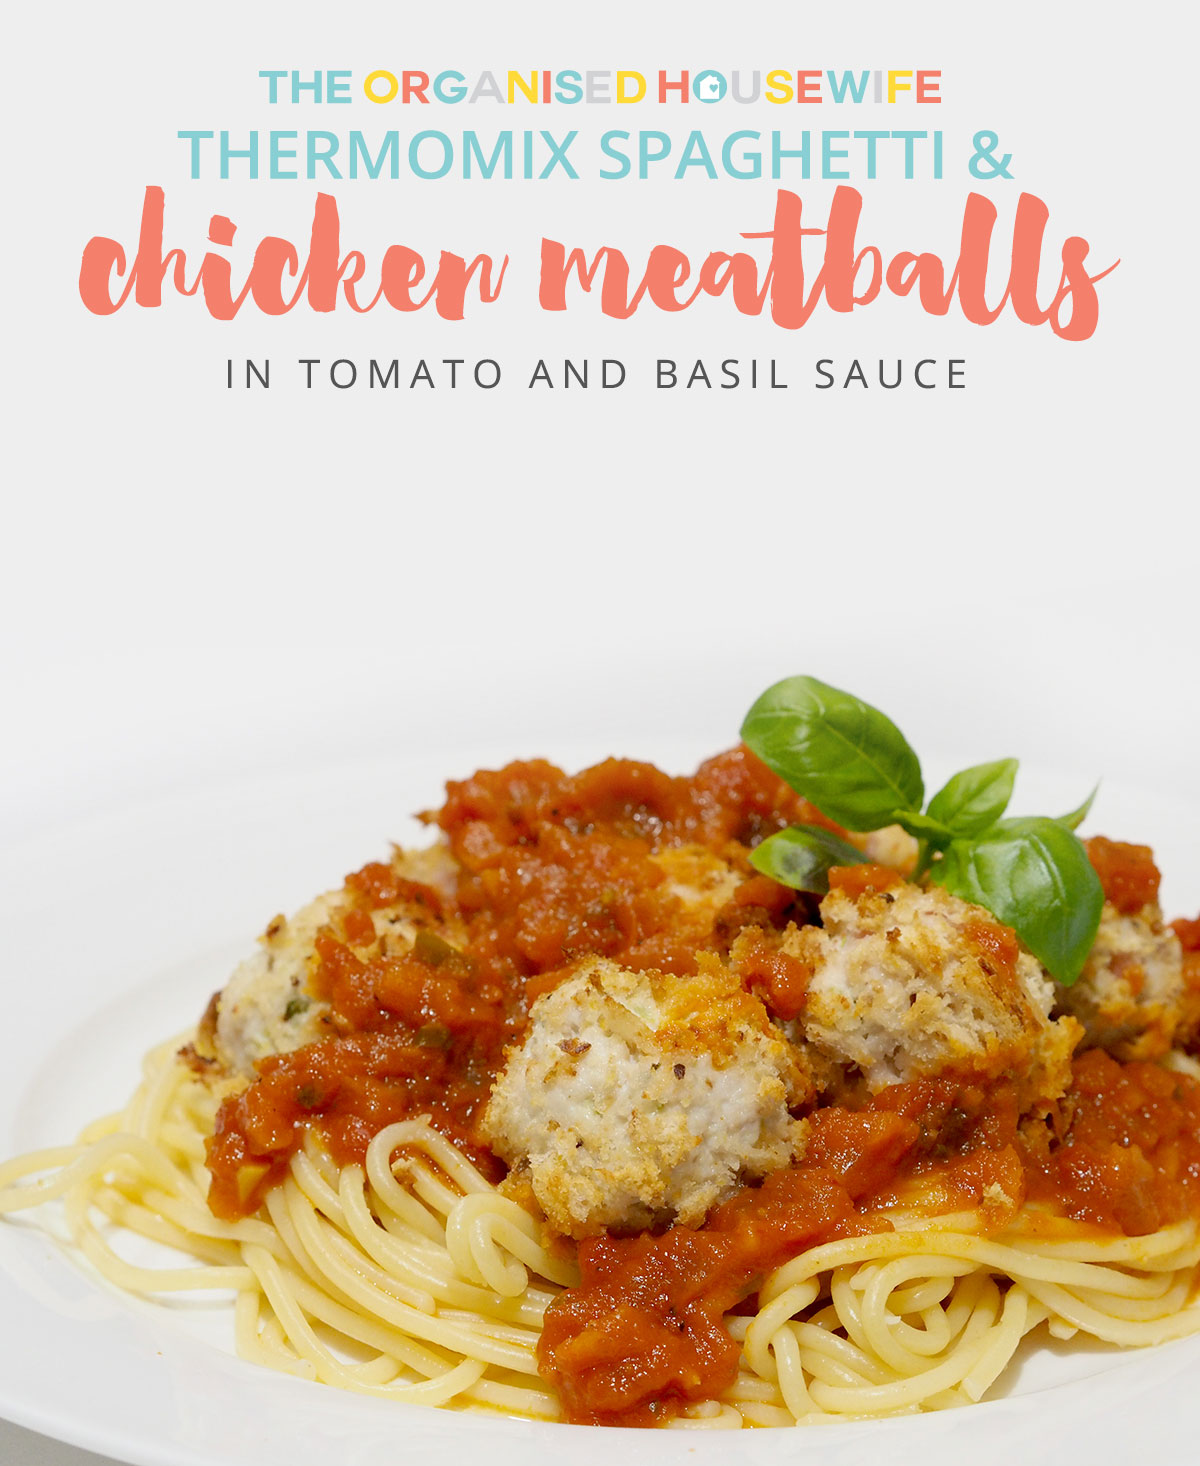 THERMOMIX CHICKEN MEATBALLS IN TOMATO & BASIL SAUCE - We are big fans of spaghetti bolognese here, my tribe would eat it every week if I let them. To mix it up a little I make spaghetti and meatballs which they love just as much. I really enjoy this tomato basil sauce, I use fresh basil from my vegetable patch, chopped fresh basil would have to be one of my favourite smells in the kitchen.